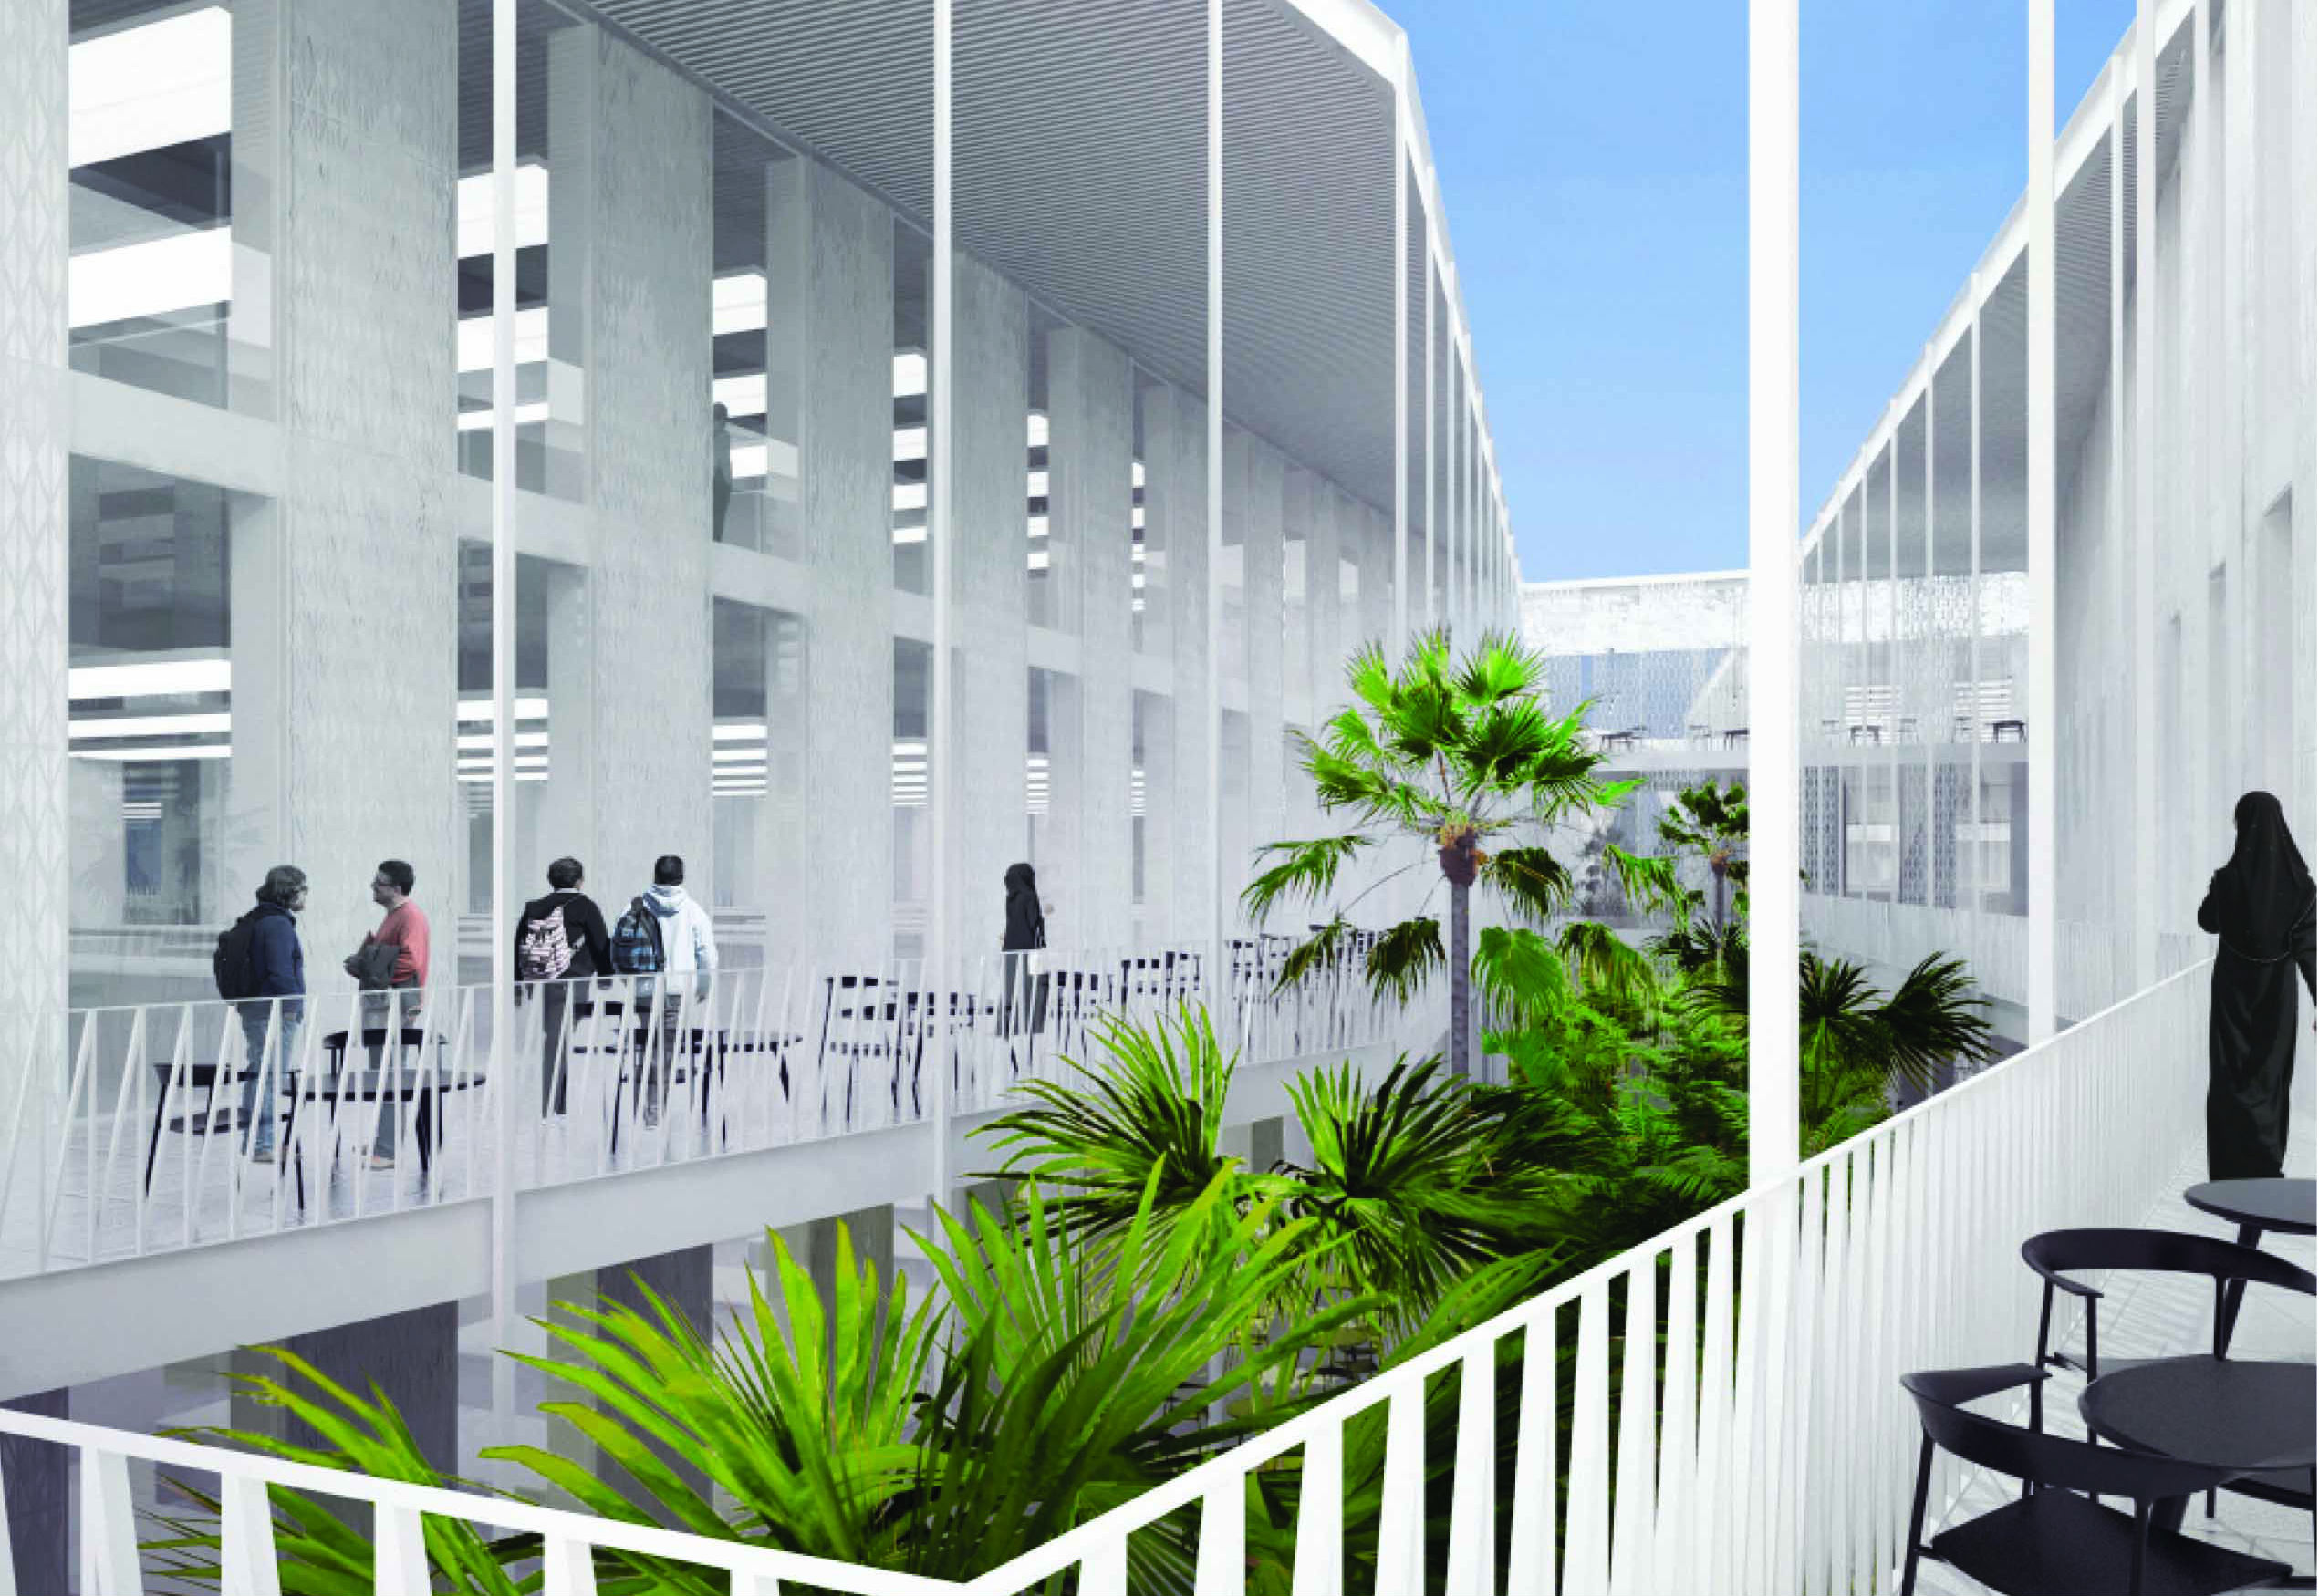 Artist impression of how the new building will look.